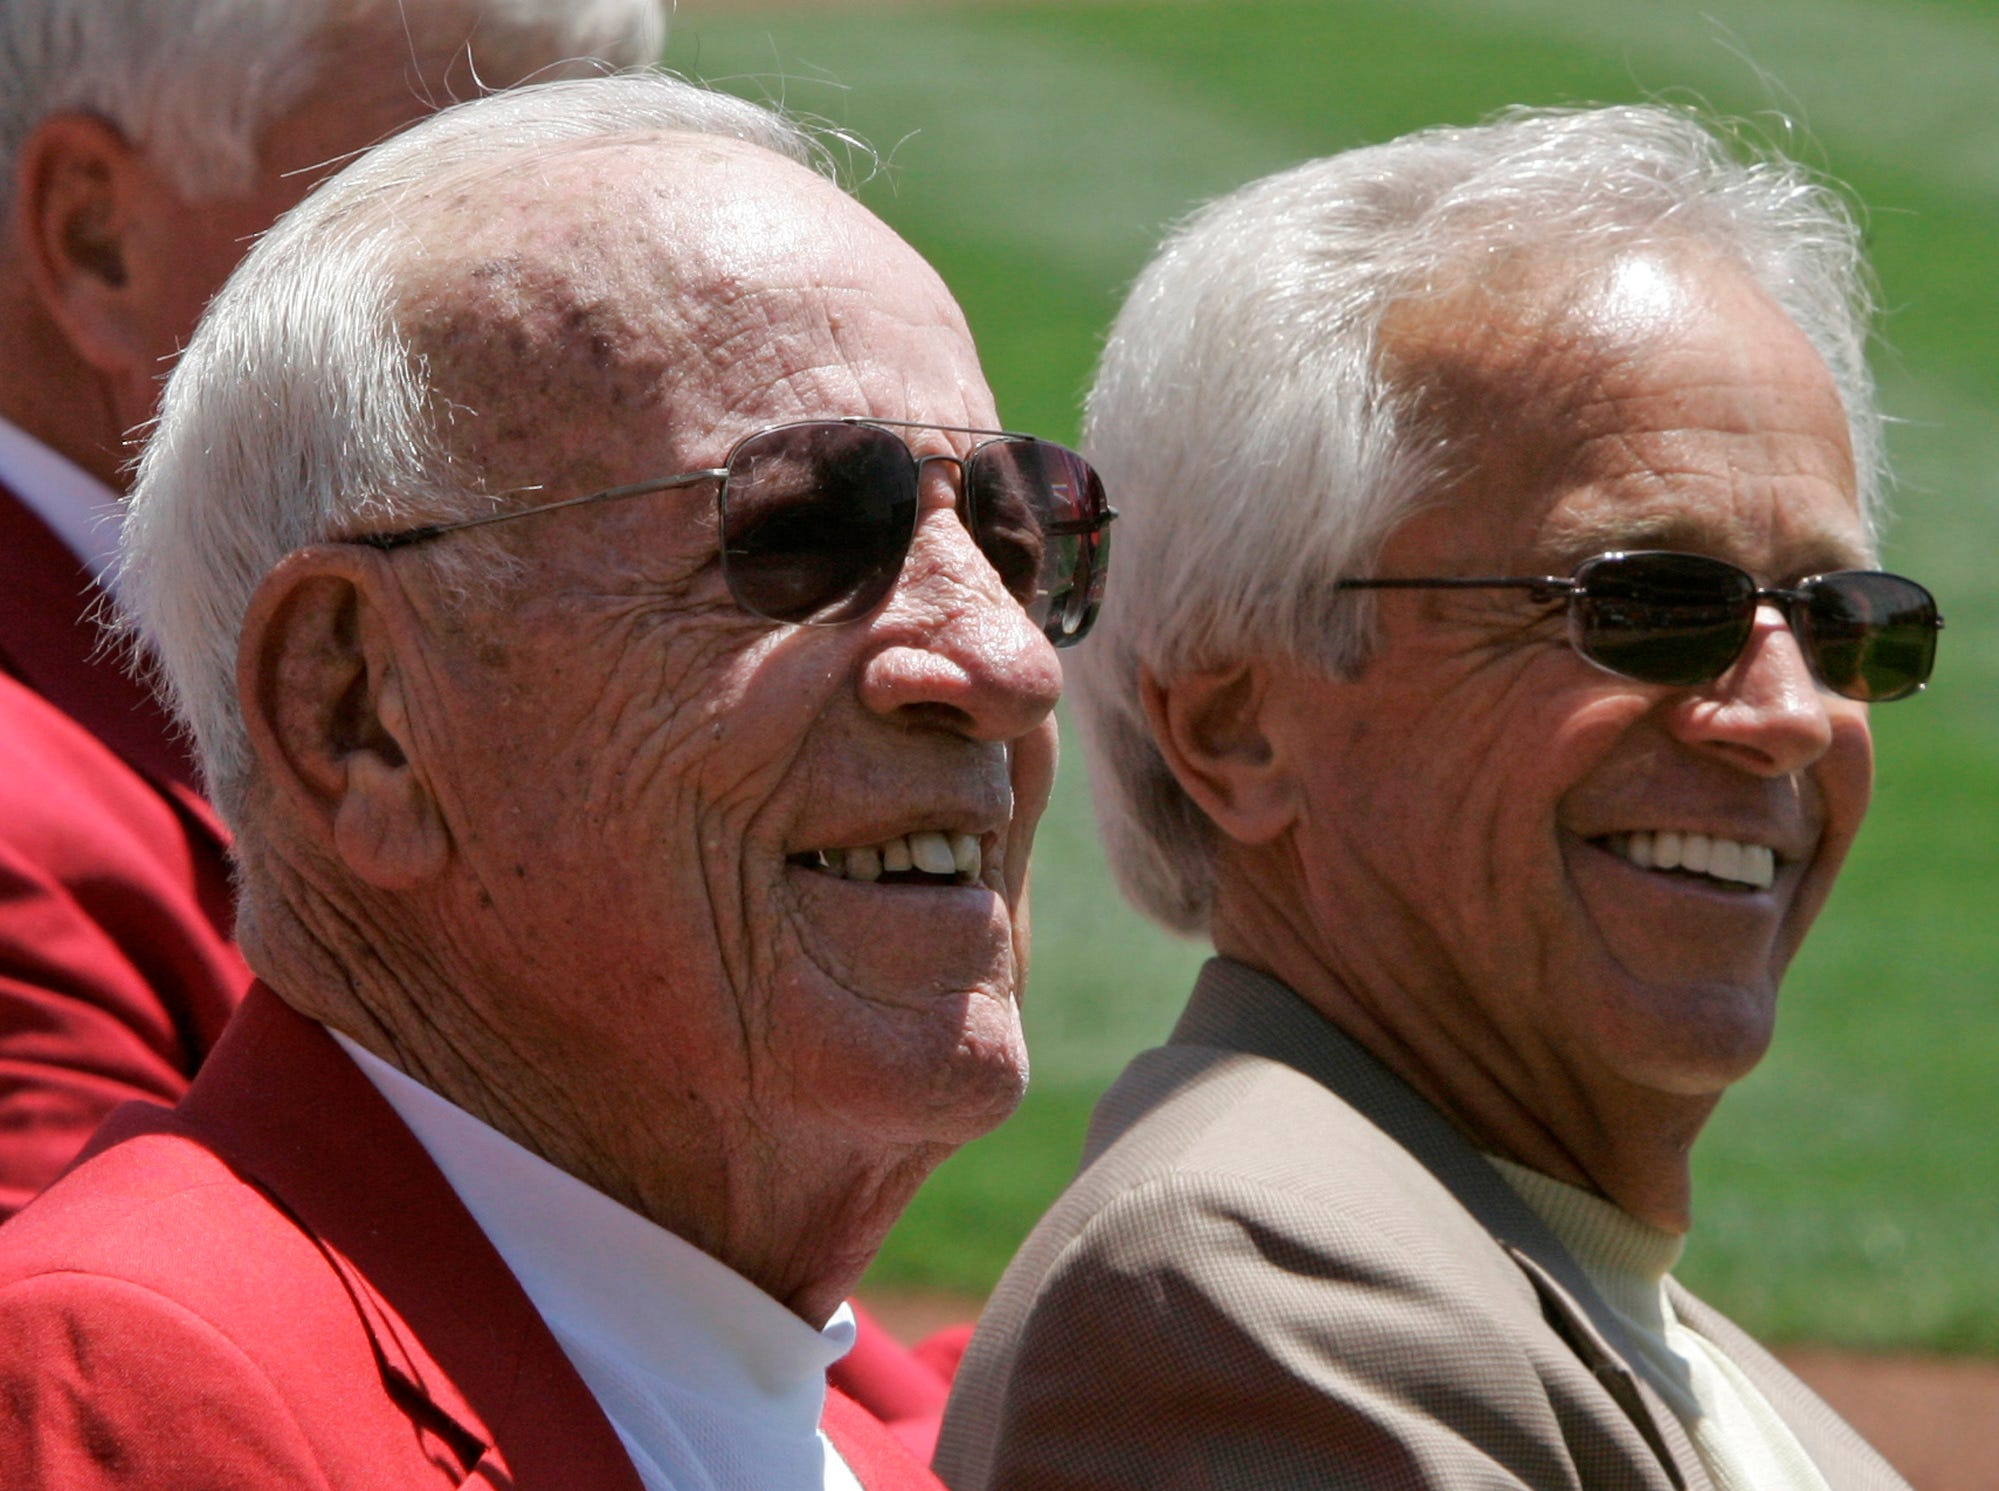 Cincinnati Reds broadcasters Joe Nuxhall, left, and Marty Brennaman smile during ceremonies honoring them and broadcaster Waite Hoyt prior a baseball game between the Reds and Cleveland Indians, Sunday, June 10, 2007, in Cincinnati.